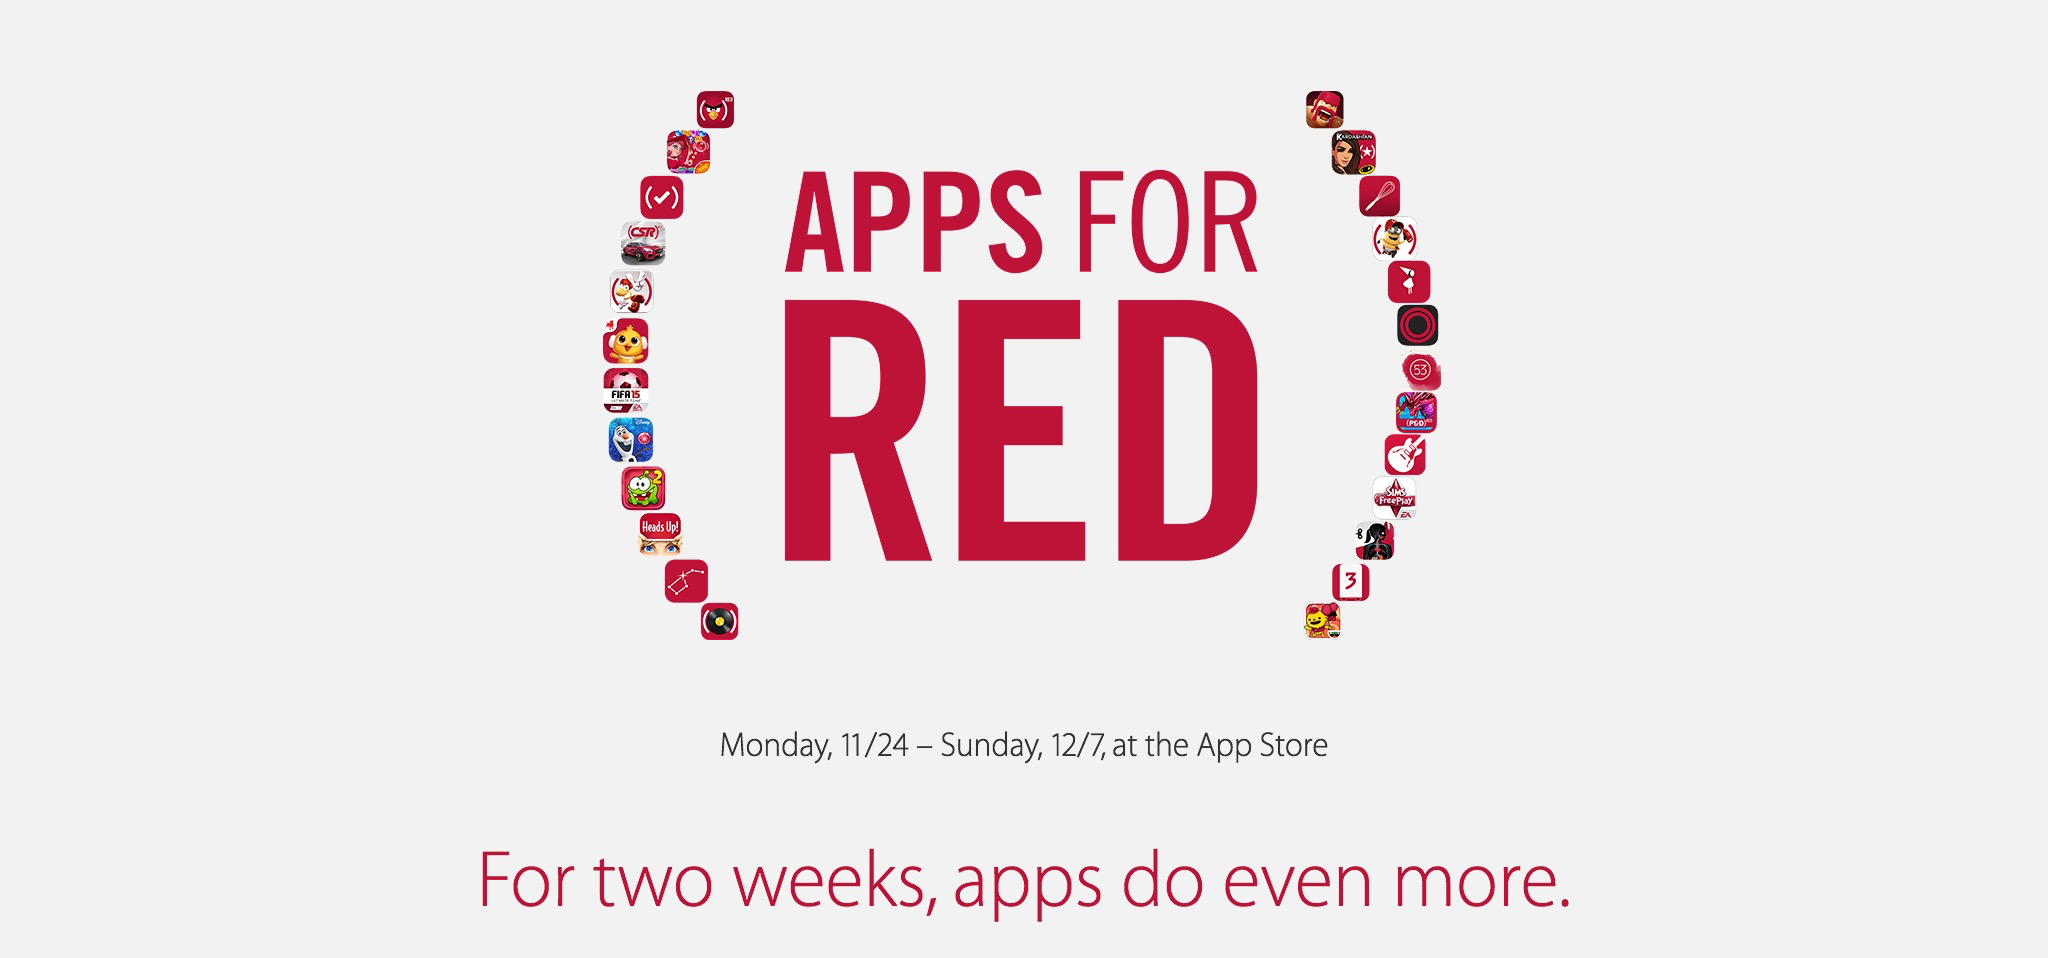 Apps for RED SIDA